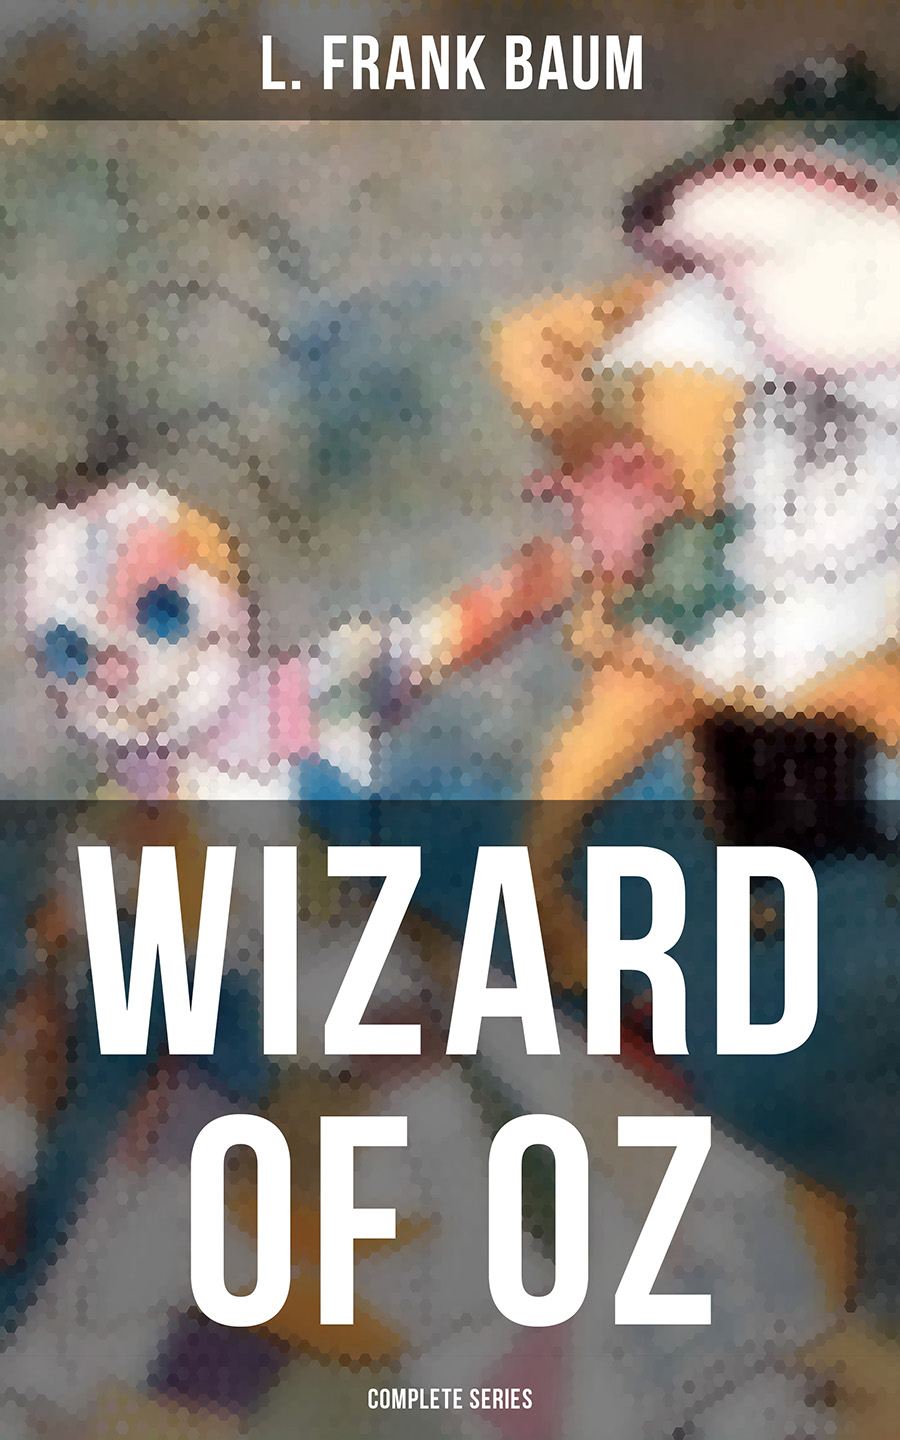 L. Frank Baum WIZARD OF OZ - Complete Series baum l f the wonderful wizard of oz reader книга для чтения